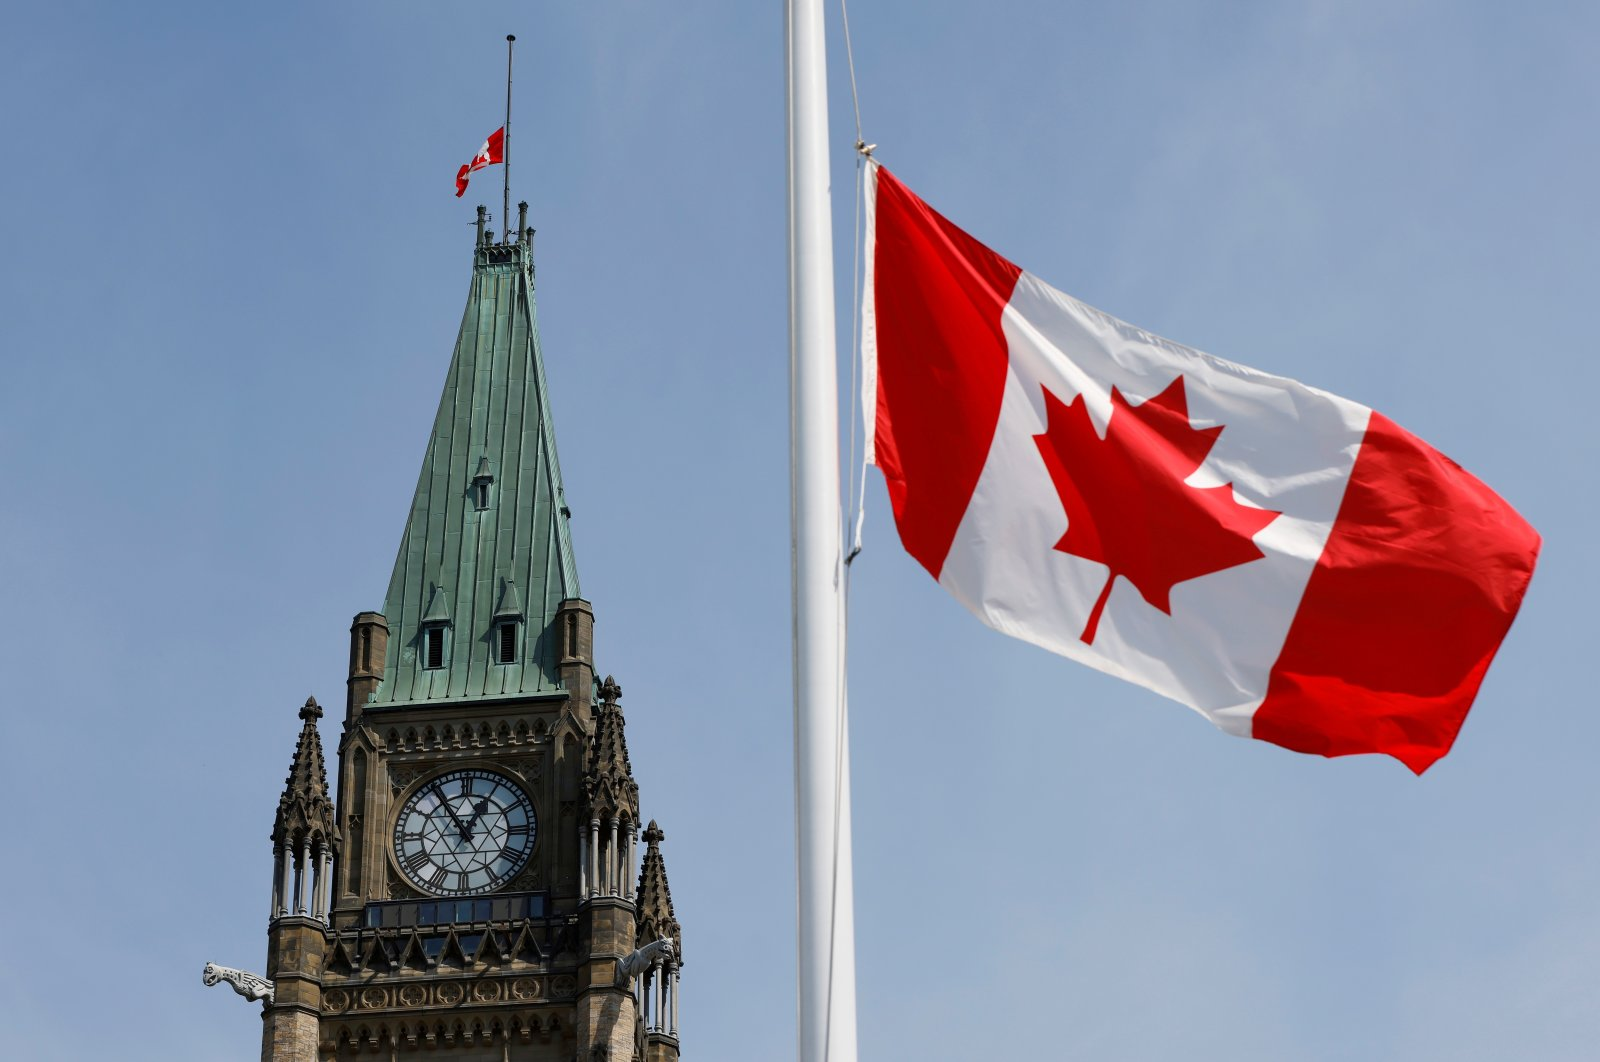 Canadian flags fly on Parliament Hill in Ottawa, Ontario, Canada, April 9, 2021. (Reuters Photo)